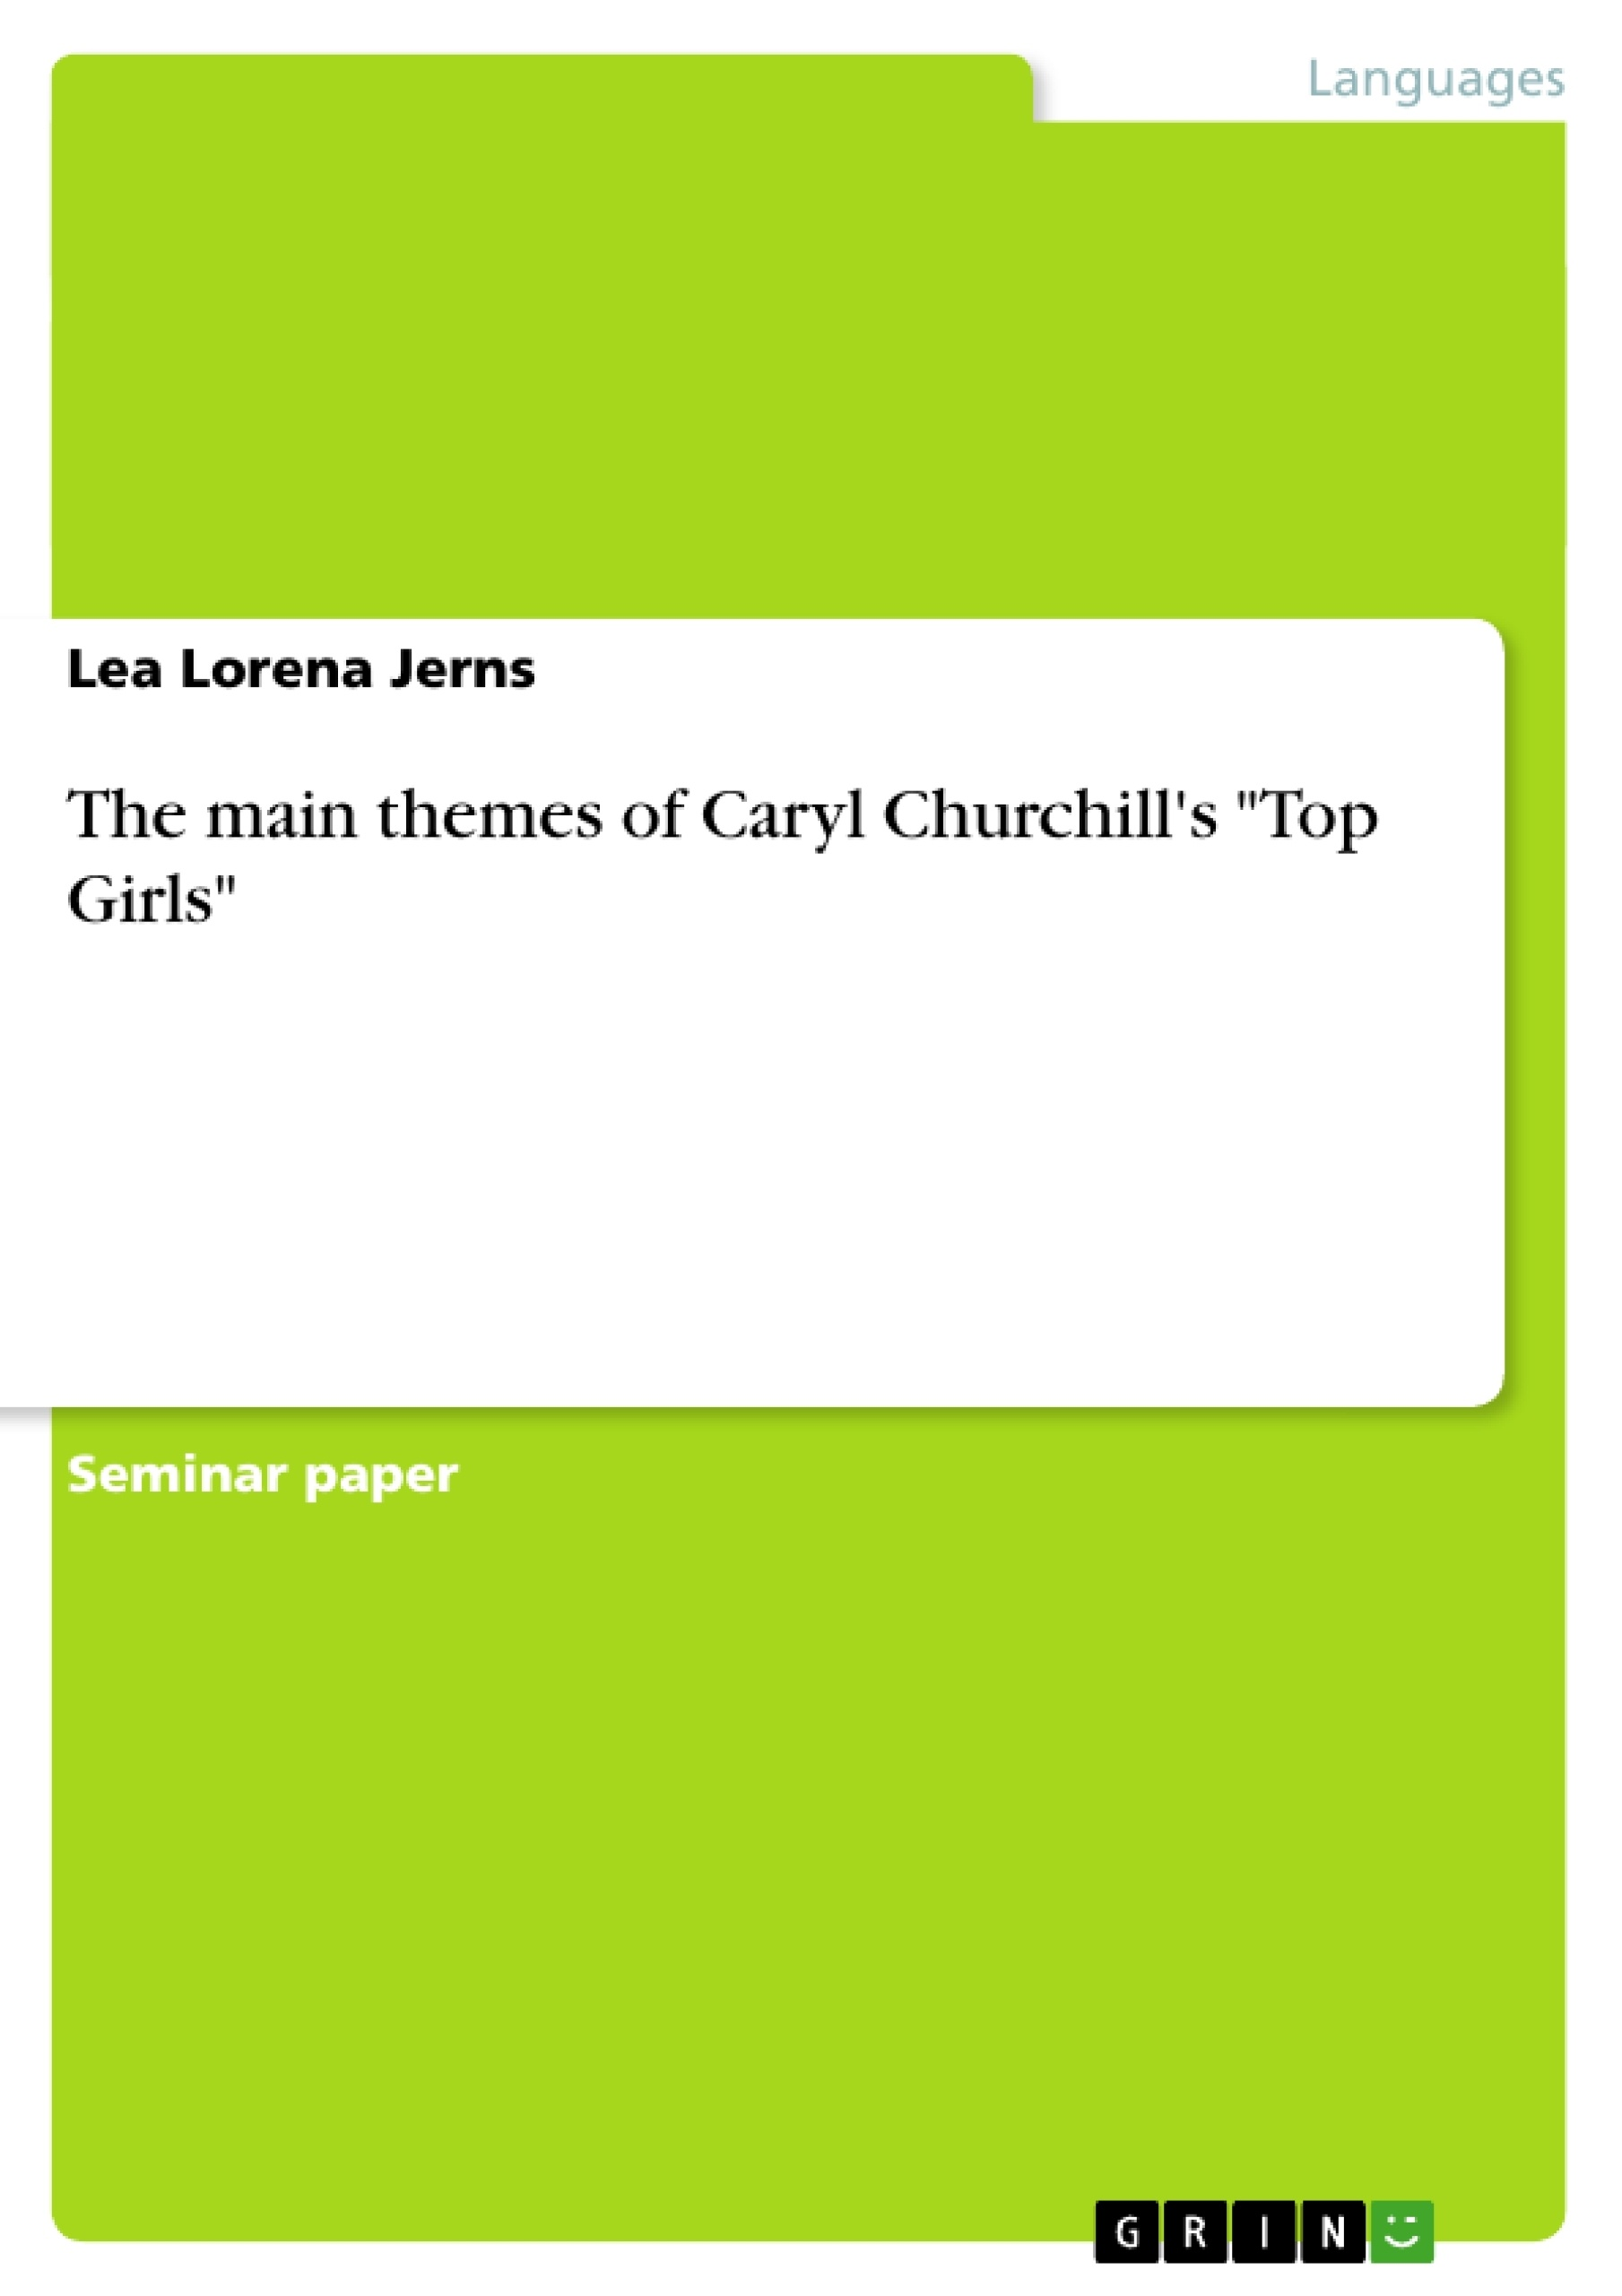 the main themes of caryl churchill s top girls publish your the main themes of caryl churchill s top girls publish your master s thesis bachelor s thesis essay or term paper